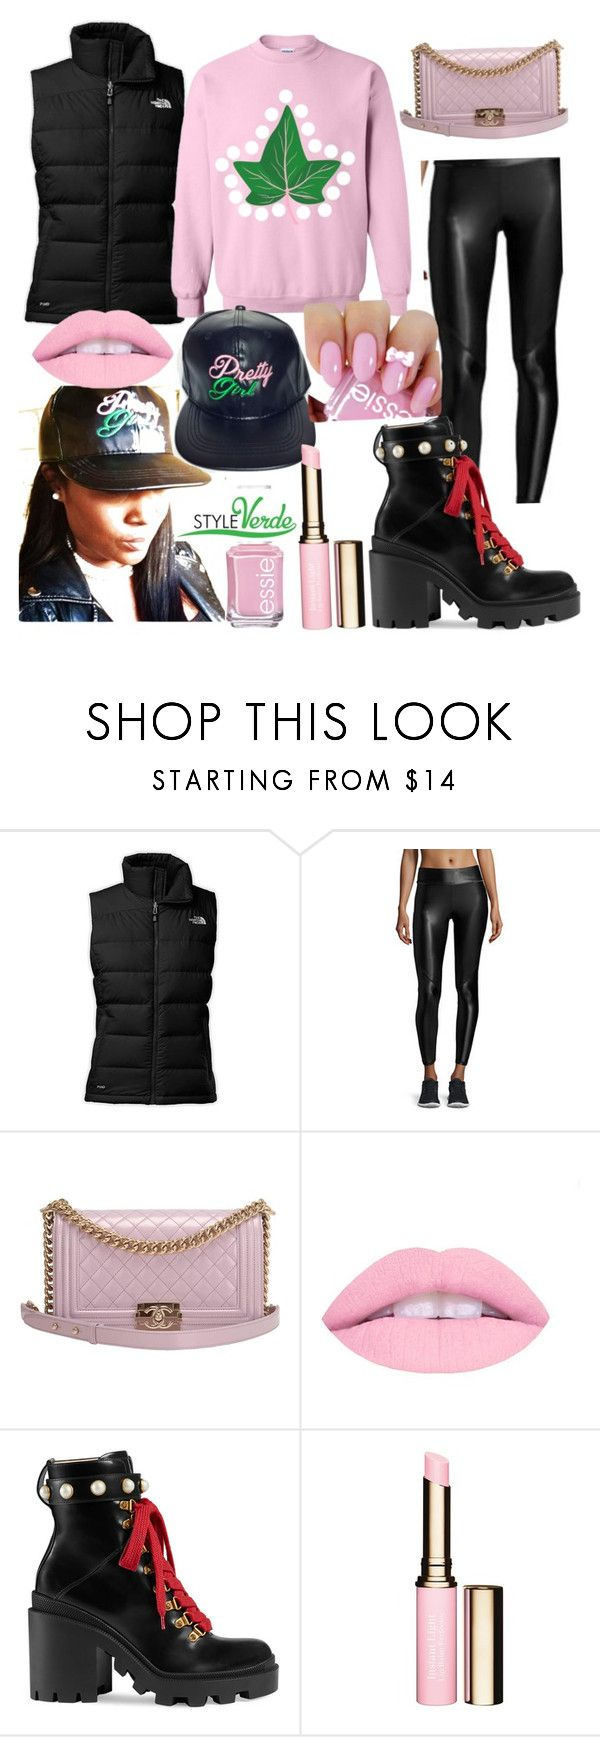 """Snow Ivy"" by cagreinvented on Polyvore featuring The North Face, Alala, Chanel, Gucci, Clarins and Essie"